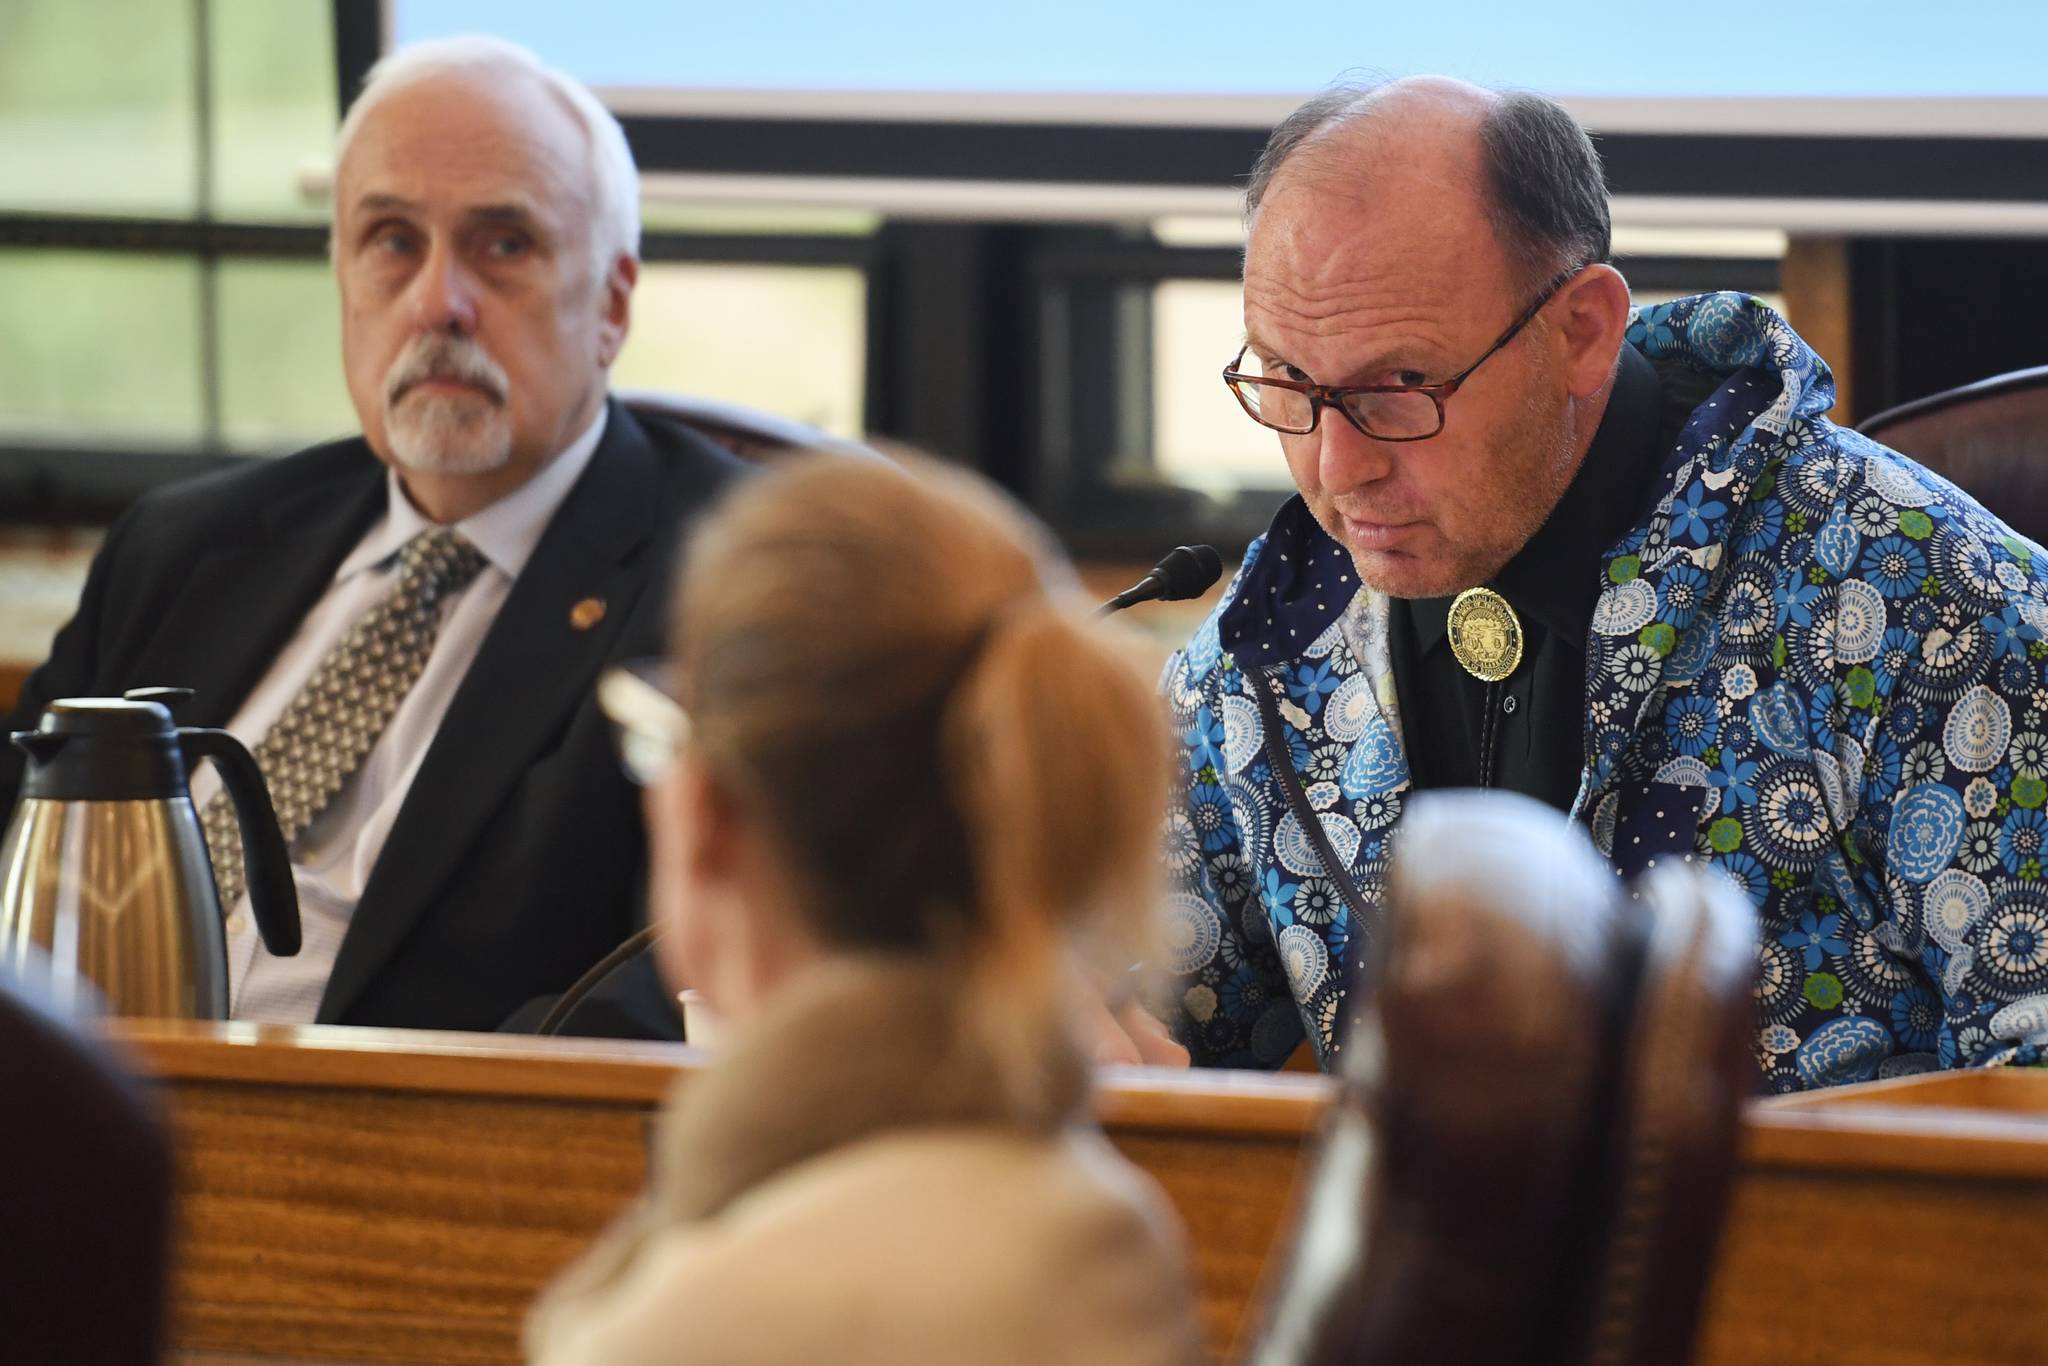 Rep. Gary Knopp, R-Kenai, right, questions Donna Arduin, Director of the Office of Management and Budget, center, as Rep. Bart LeBon, R-Fairbanks, listens during a House Finance Committee meeting on HB 2002 at the Capitol on Thursday, July 18, 2019.(Michael Penn | Juneau Empire)